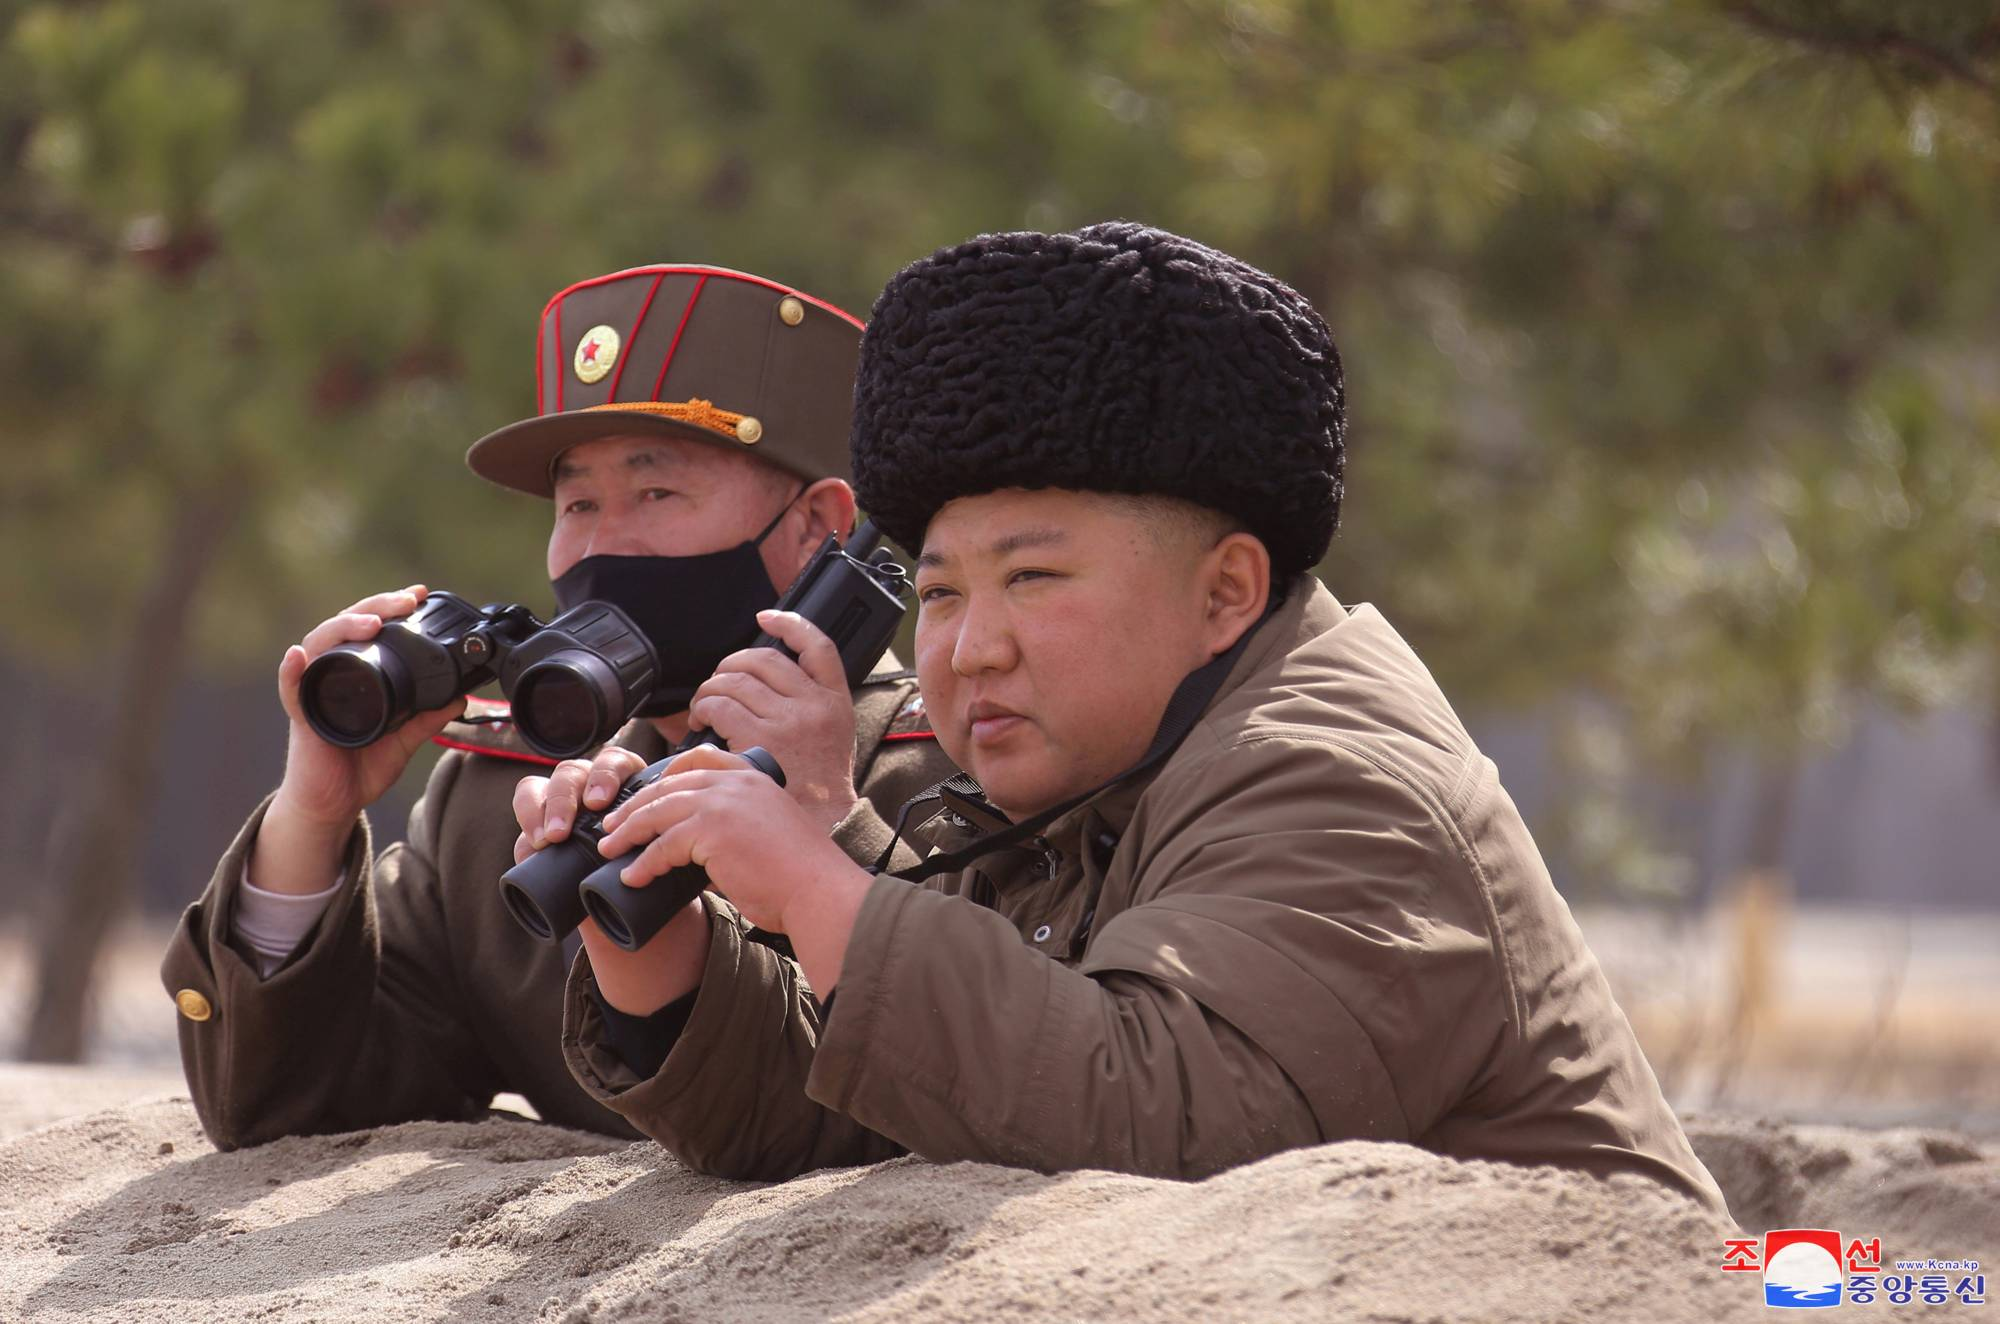 North Korean leader Kim Jong Un observes a weapons test in this undated picture released in March. | KCNA / VIA REUTERS